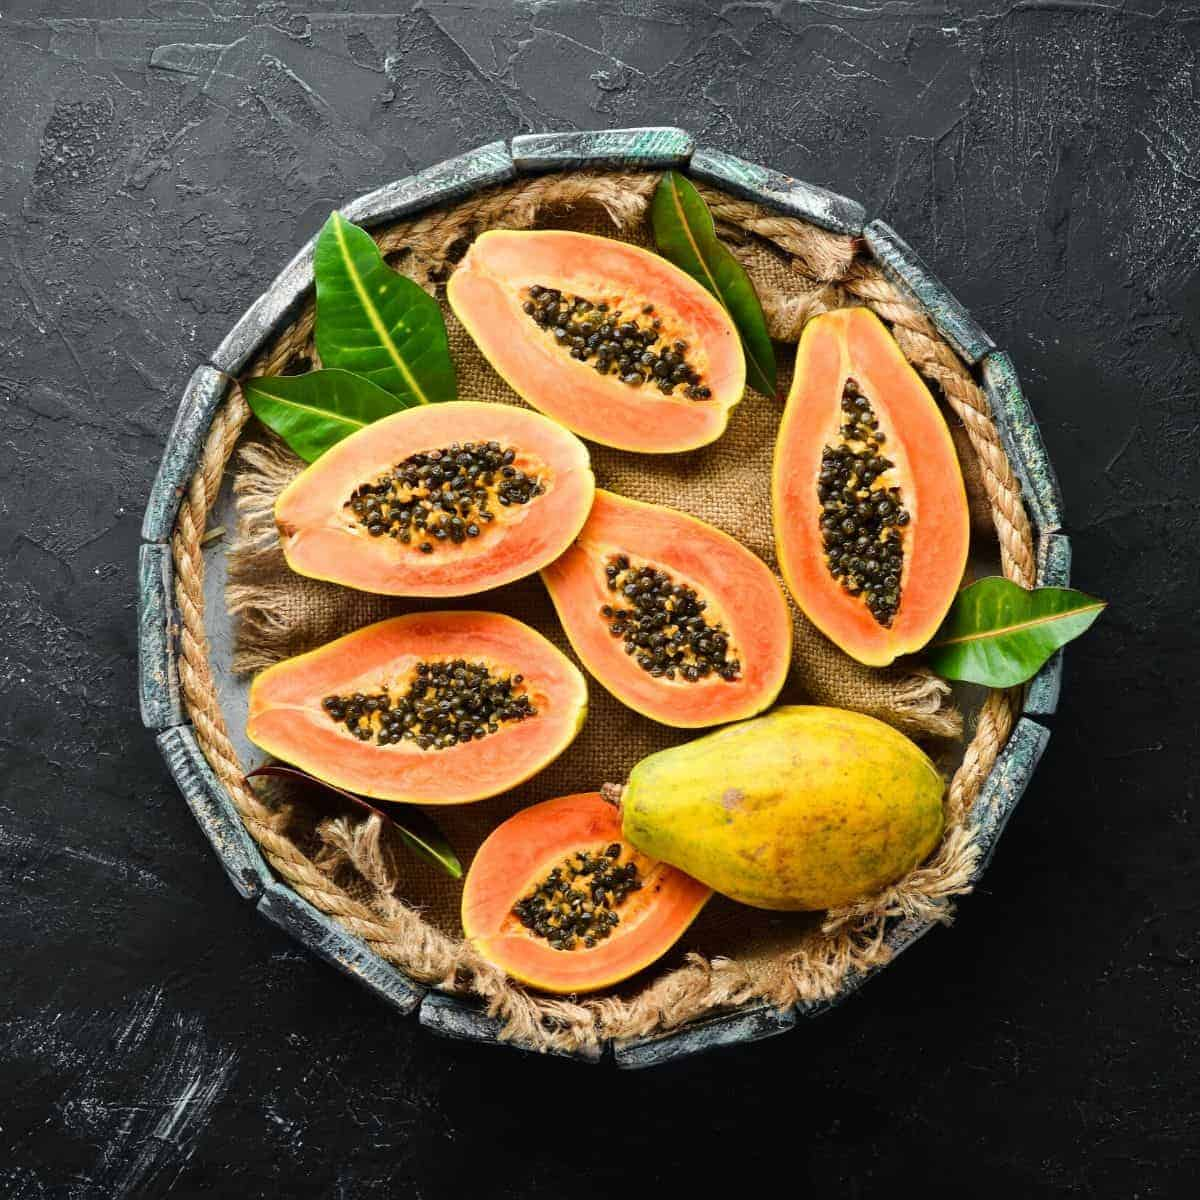 What Does Papaya Taste Like and How Do You Eat It?